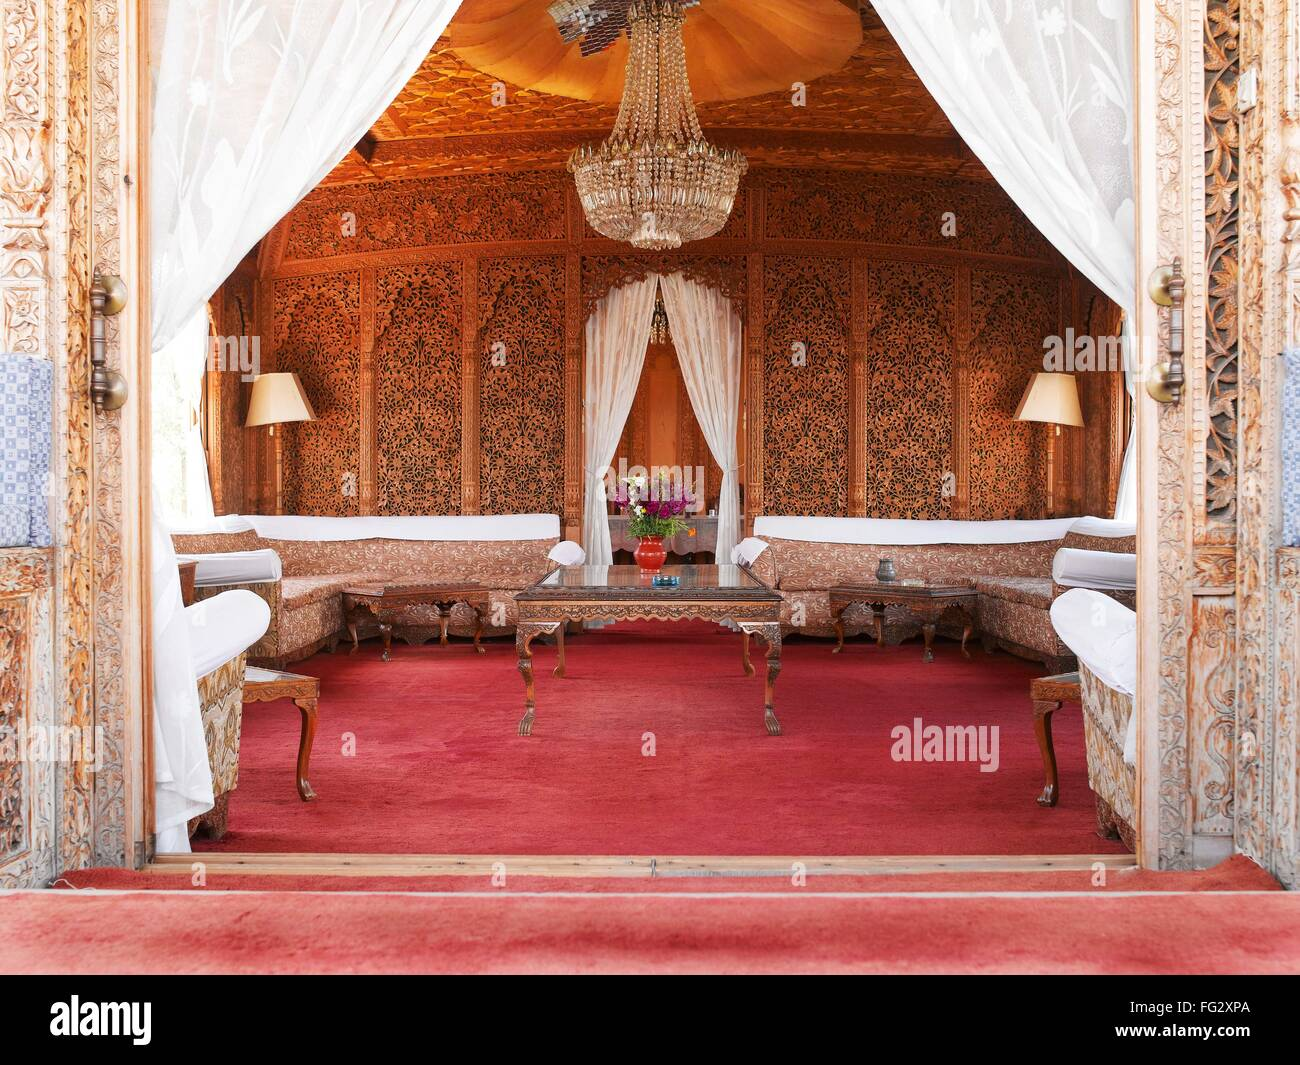 Interior house boat ; Srinagar ; Jammu and Kashmir ; India - Stock Image